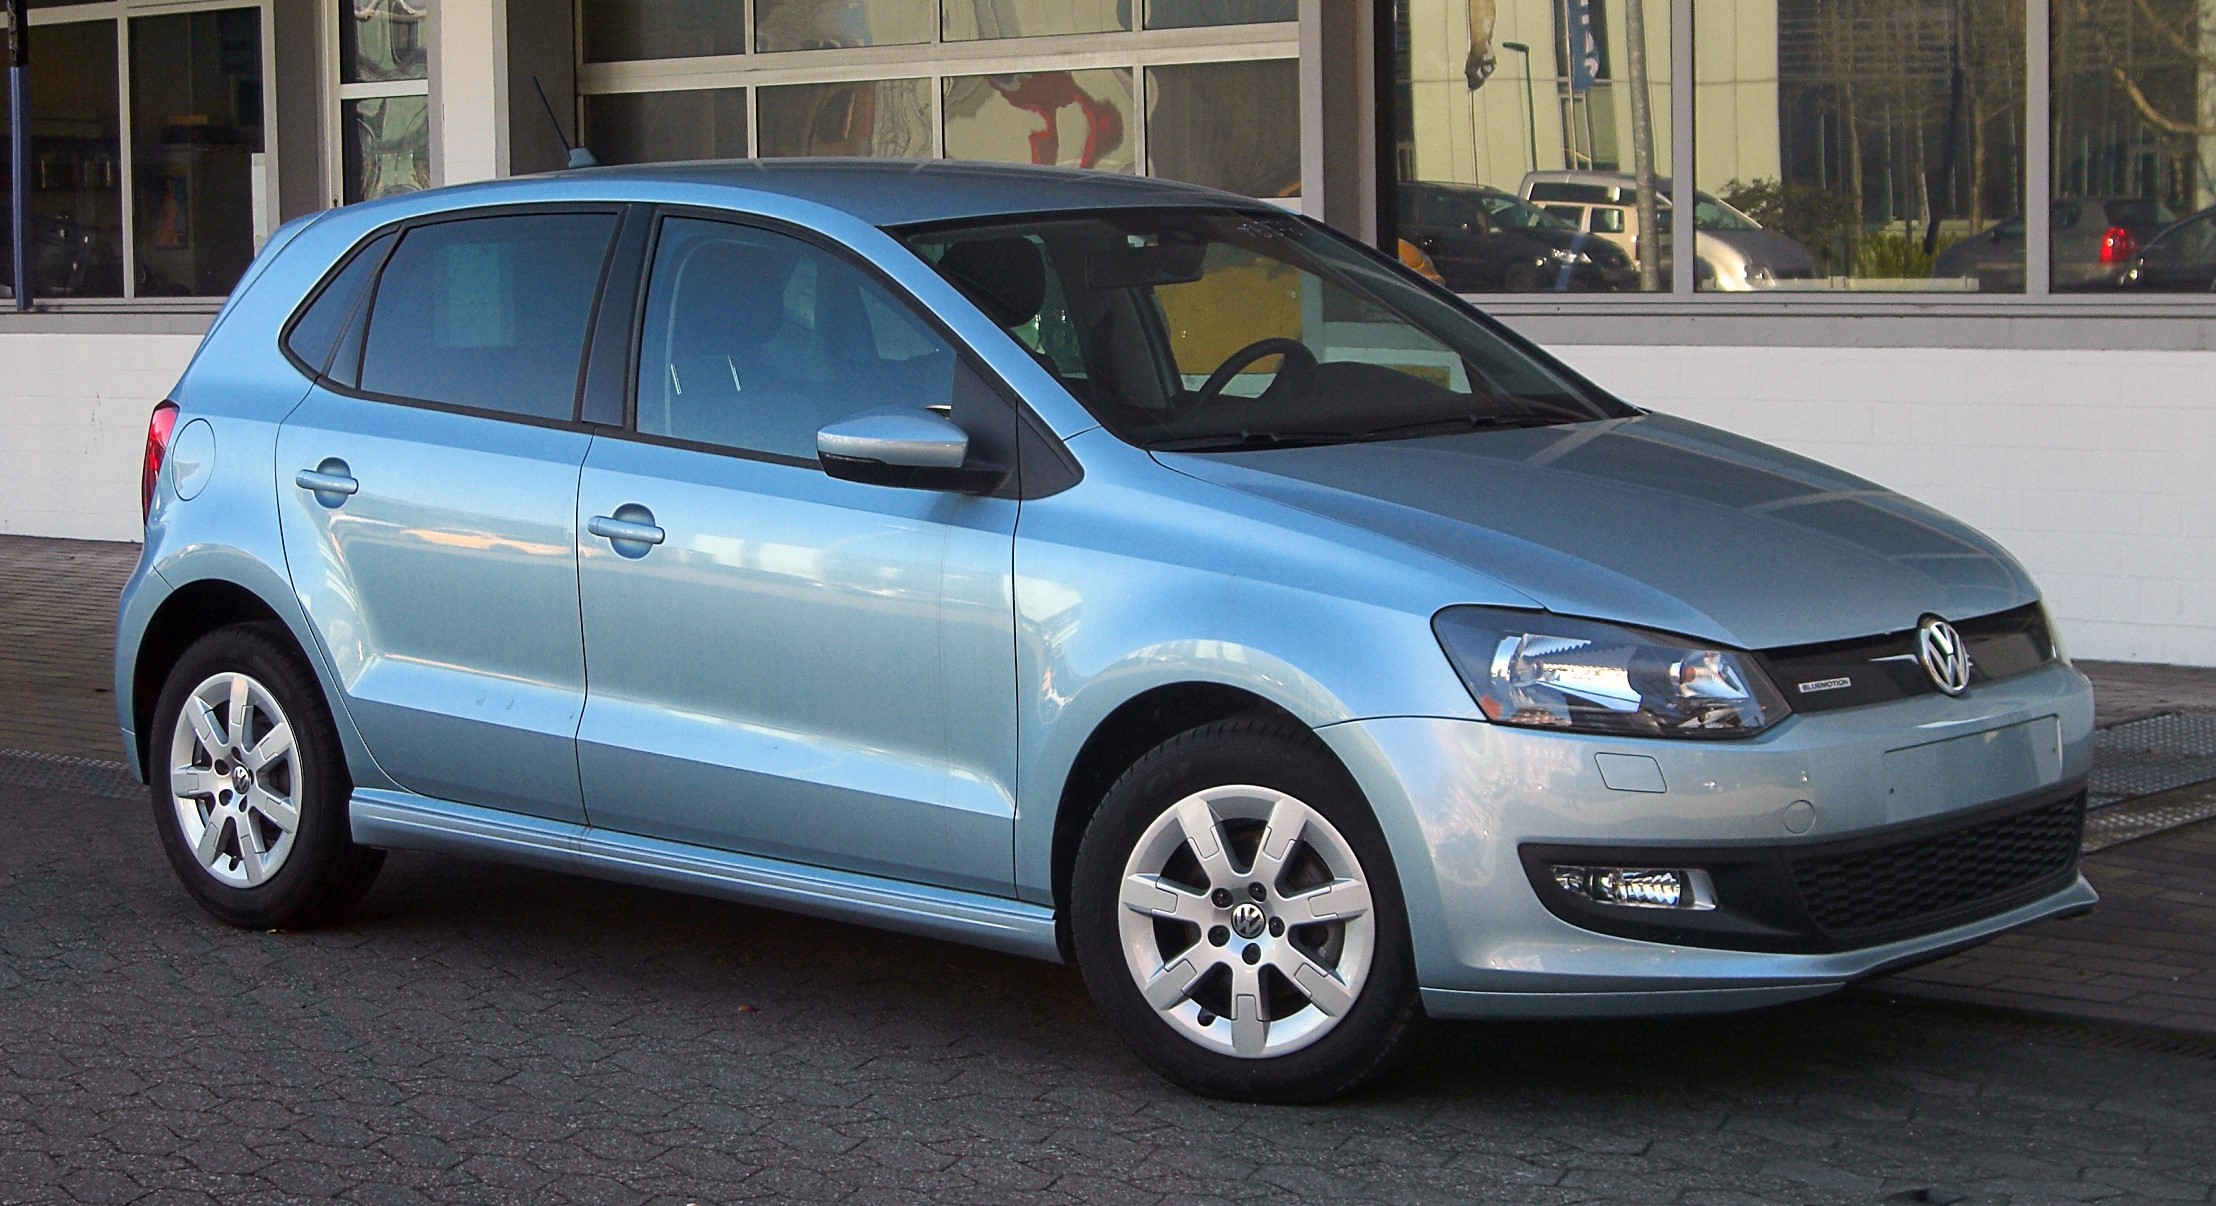 Volkswagen Polo Desktop Wallpapers